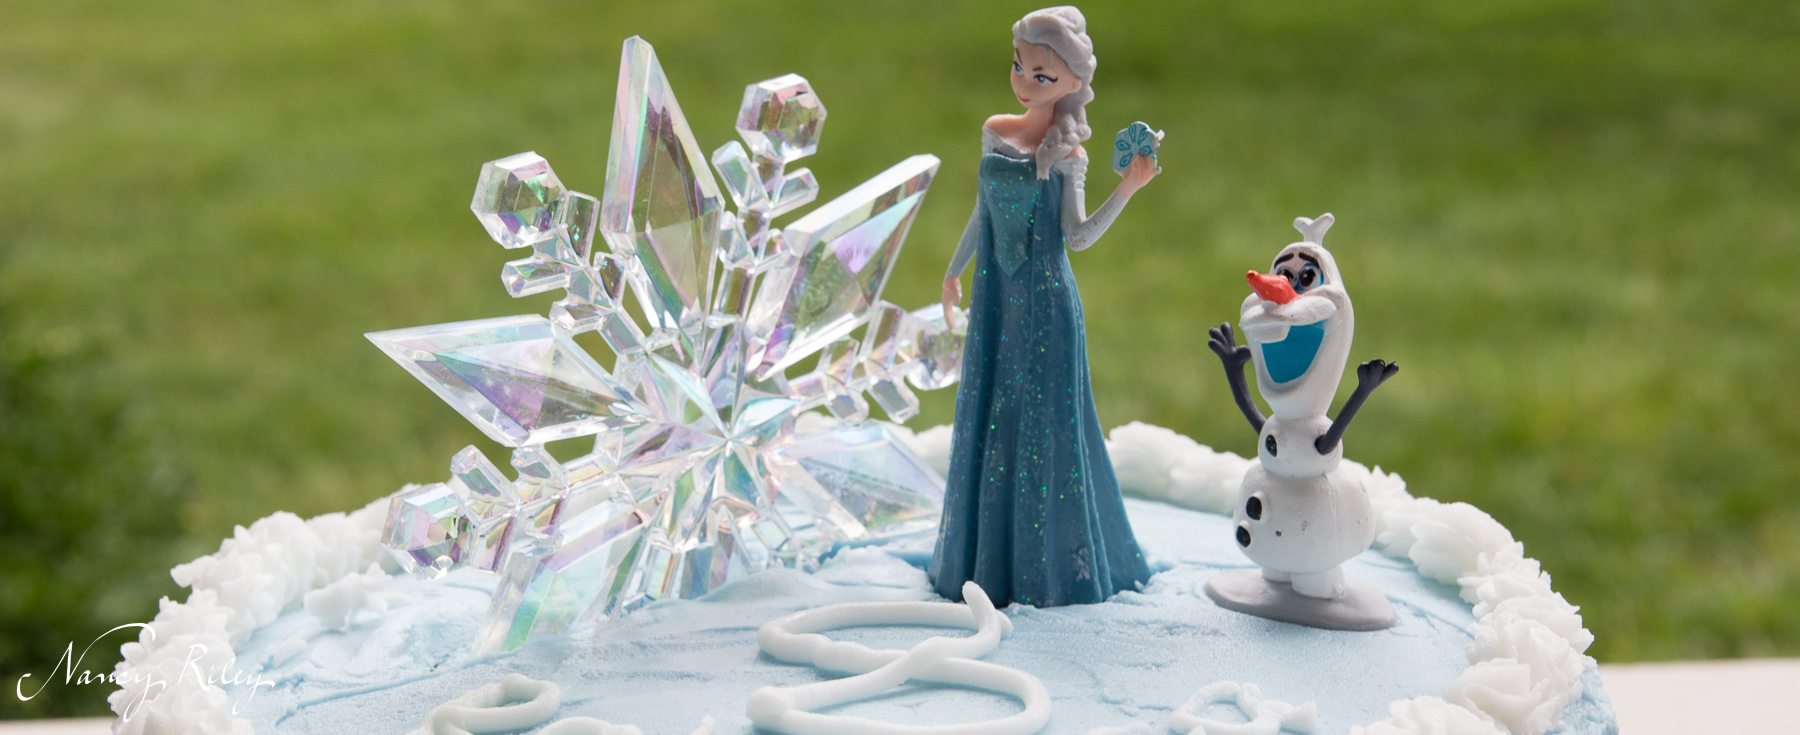 Frozen party at the pool